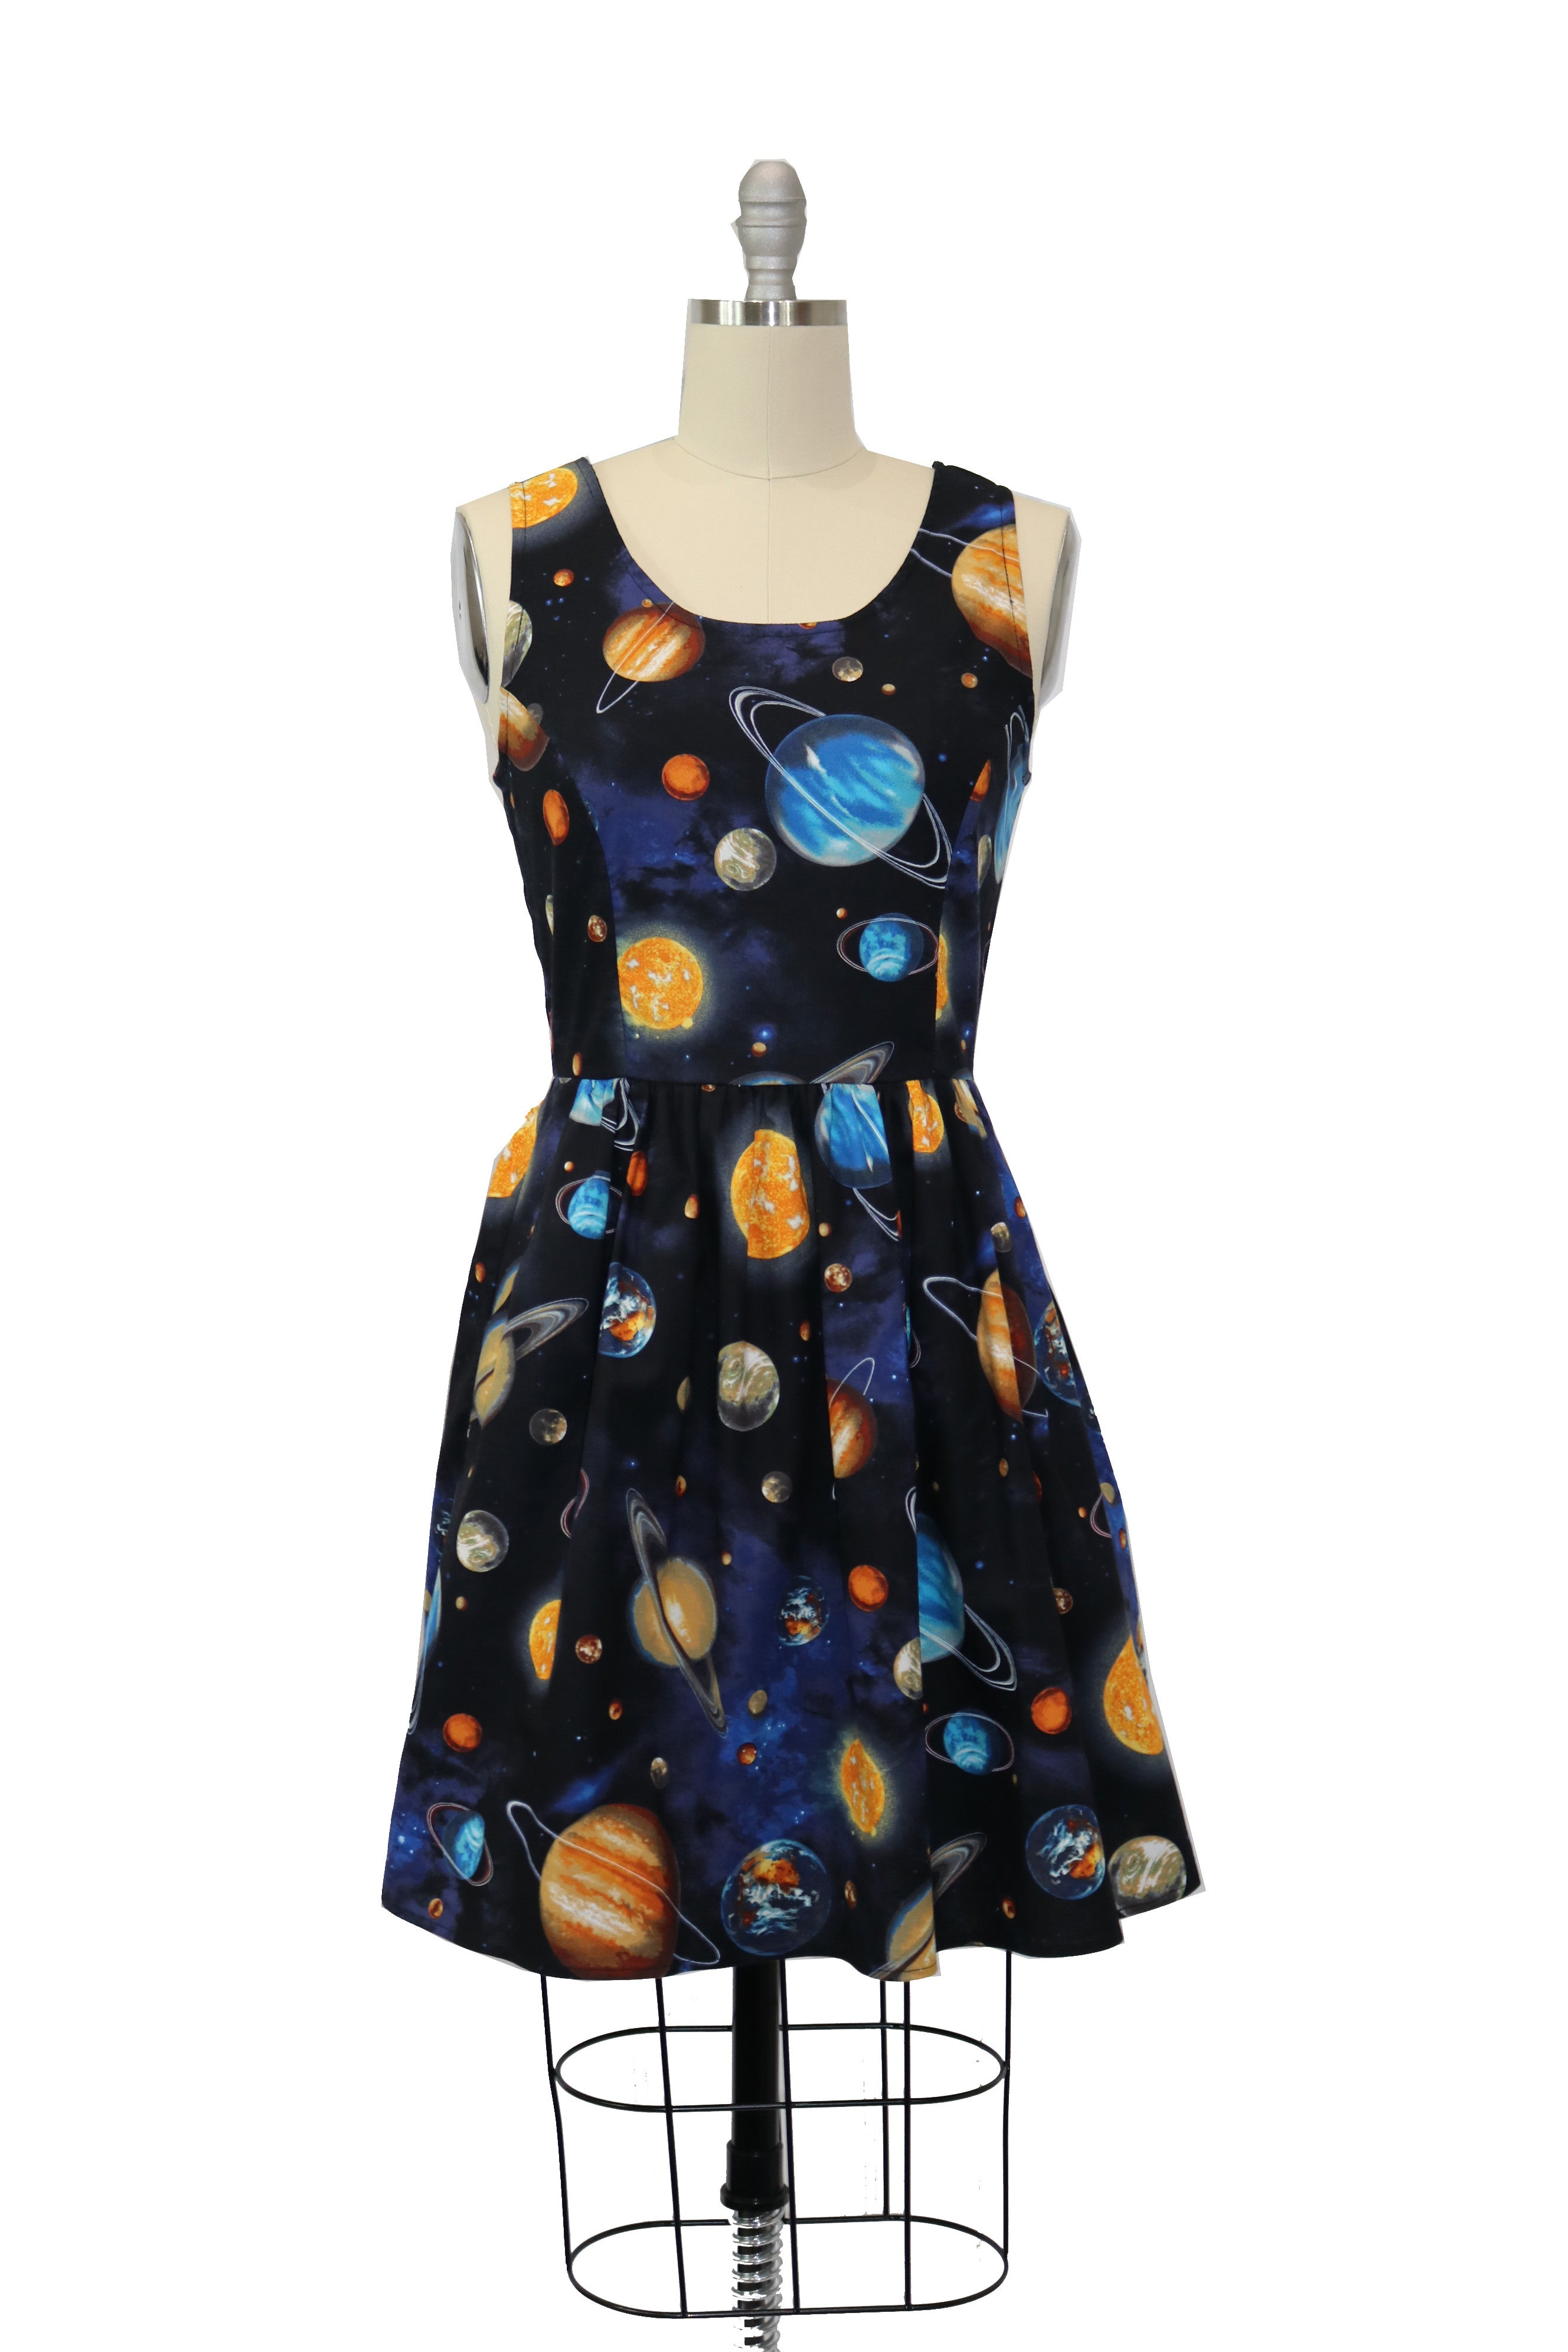 1960s Dresses | 60s Dresses Mod, Mini, Jakie O, Hippie Be an Outer Space Girl and Rocket to the Moon in this Galactic A-line Dress $45.00 AT vintagedancer.com